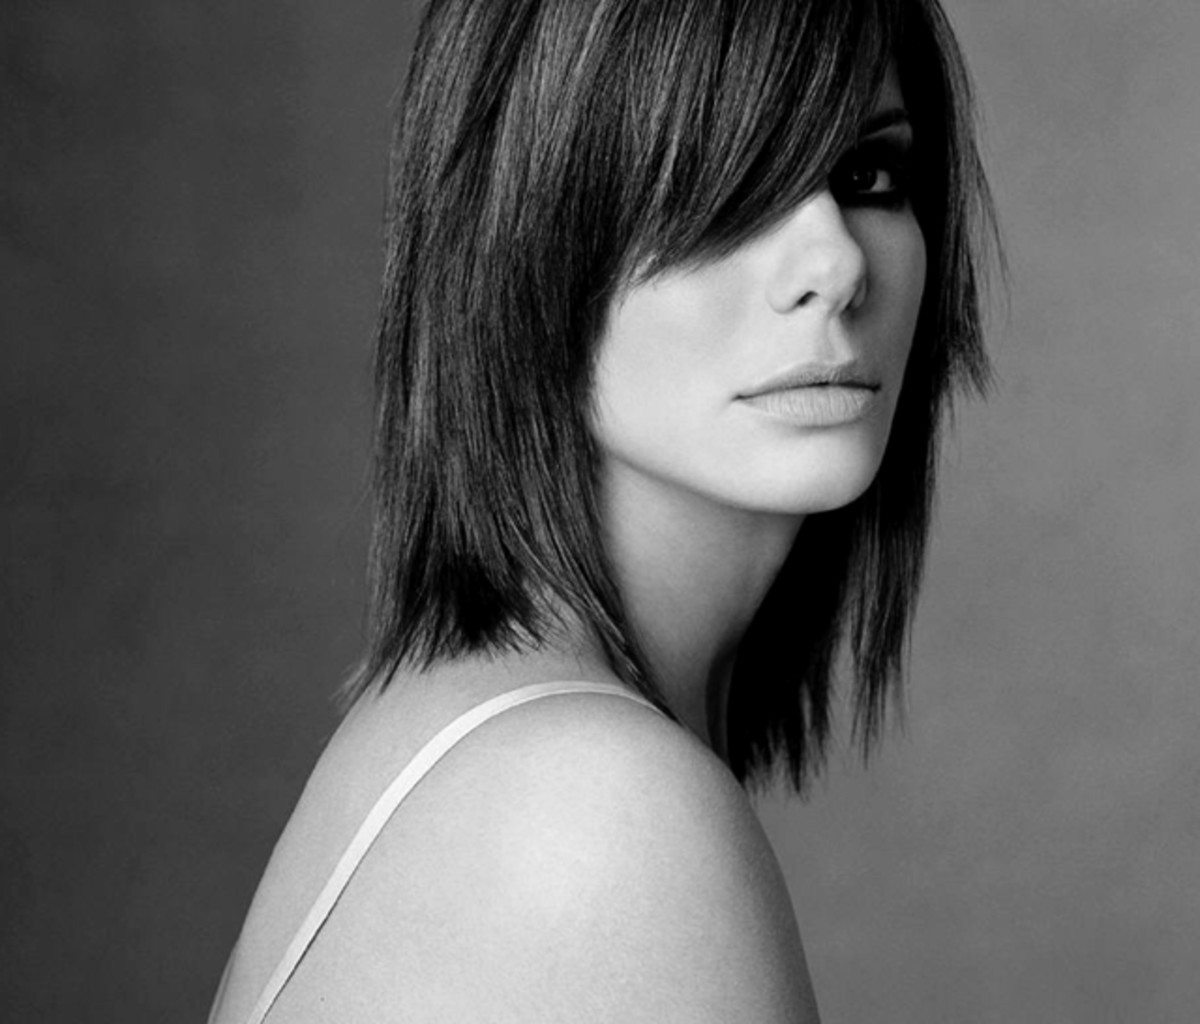 Sandra Bullock's medium hair style is one of most chic and stylish hairstyles for 2013